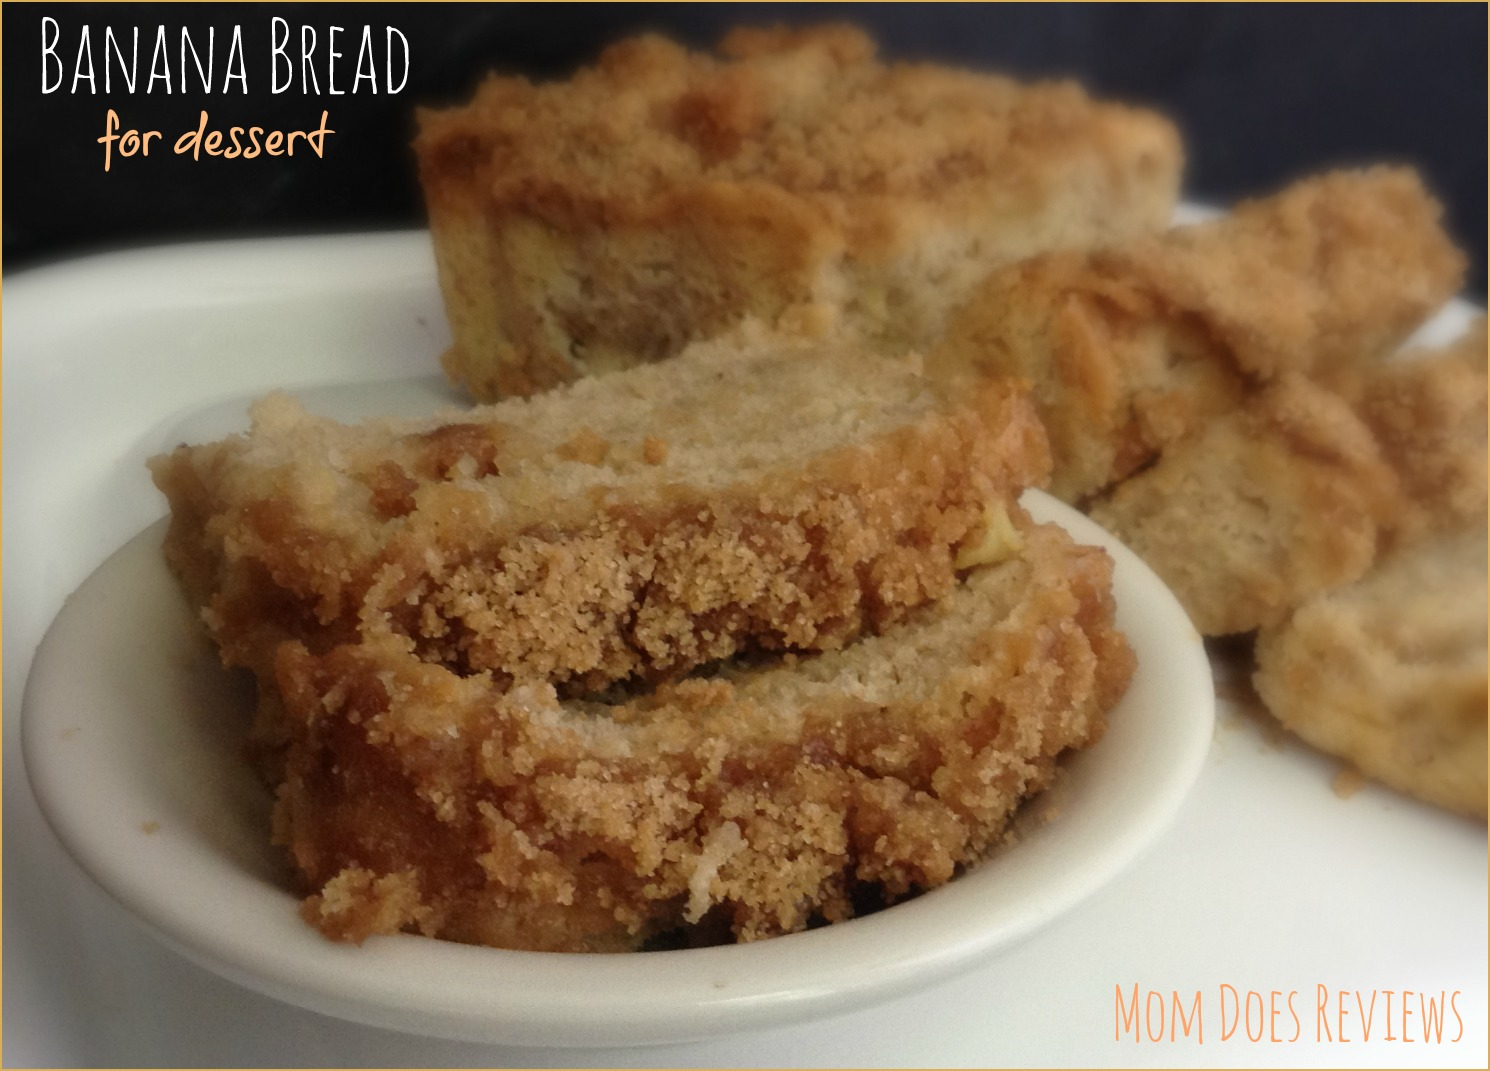 Recipes at Mom Does Reviews | Streusel Topped Banana Bread | Contains NO eggs, milk, butter, or nuts | Less than 1 tbsp of shortening in the topping only